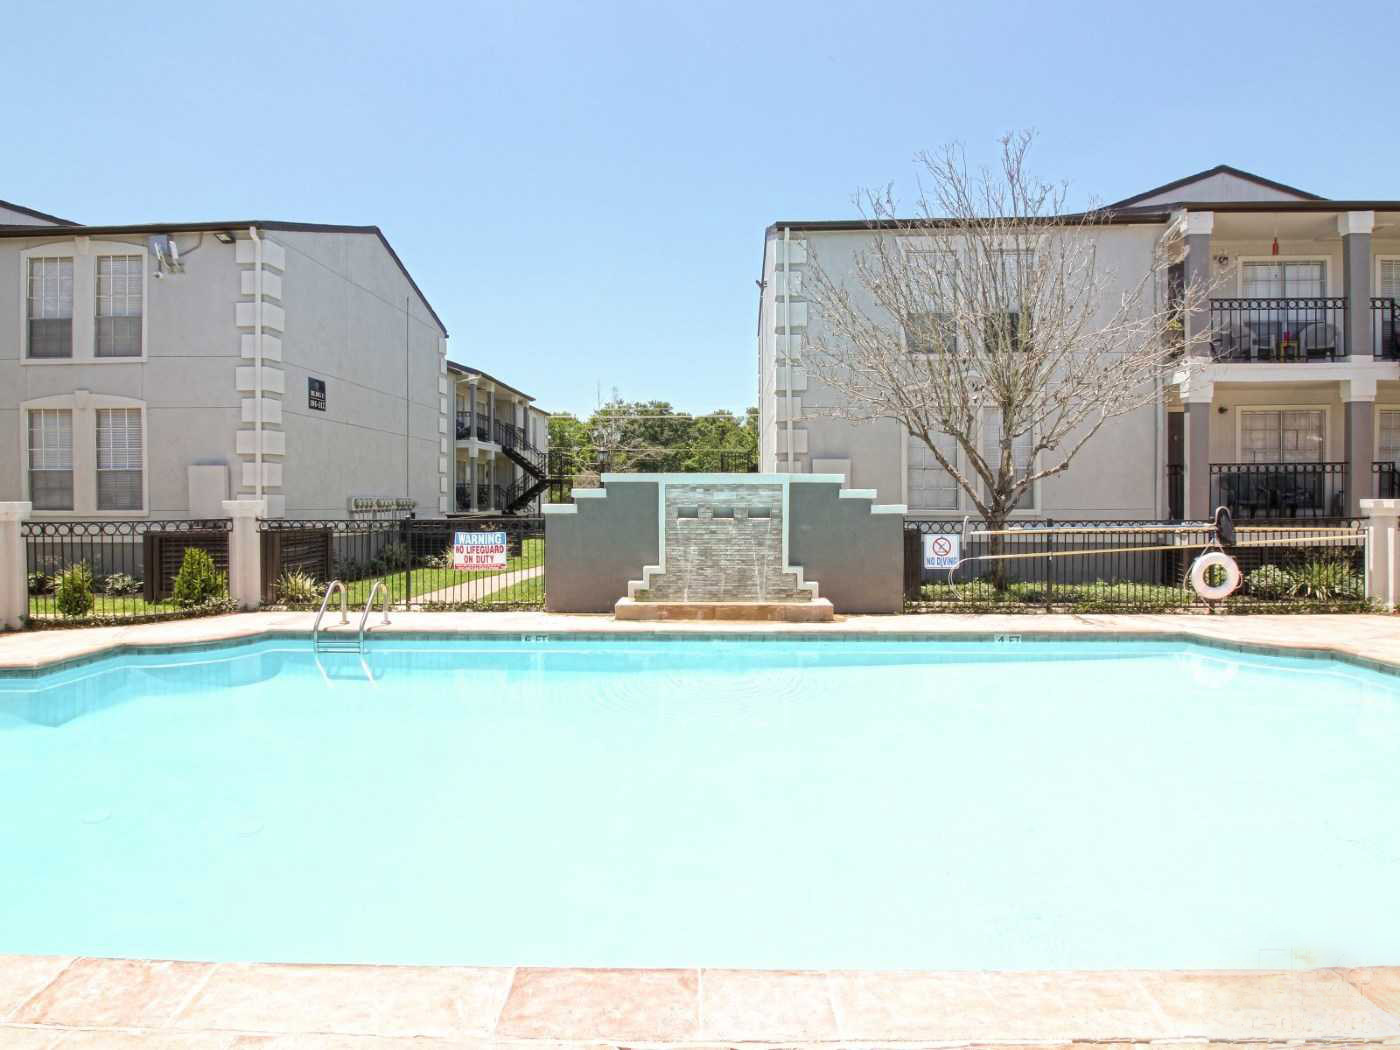 Pool with Waterfall at La Maison at Lake Cove Apartments in Seabrook, Texas